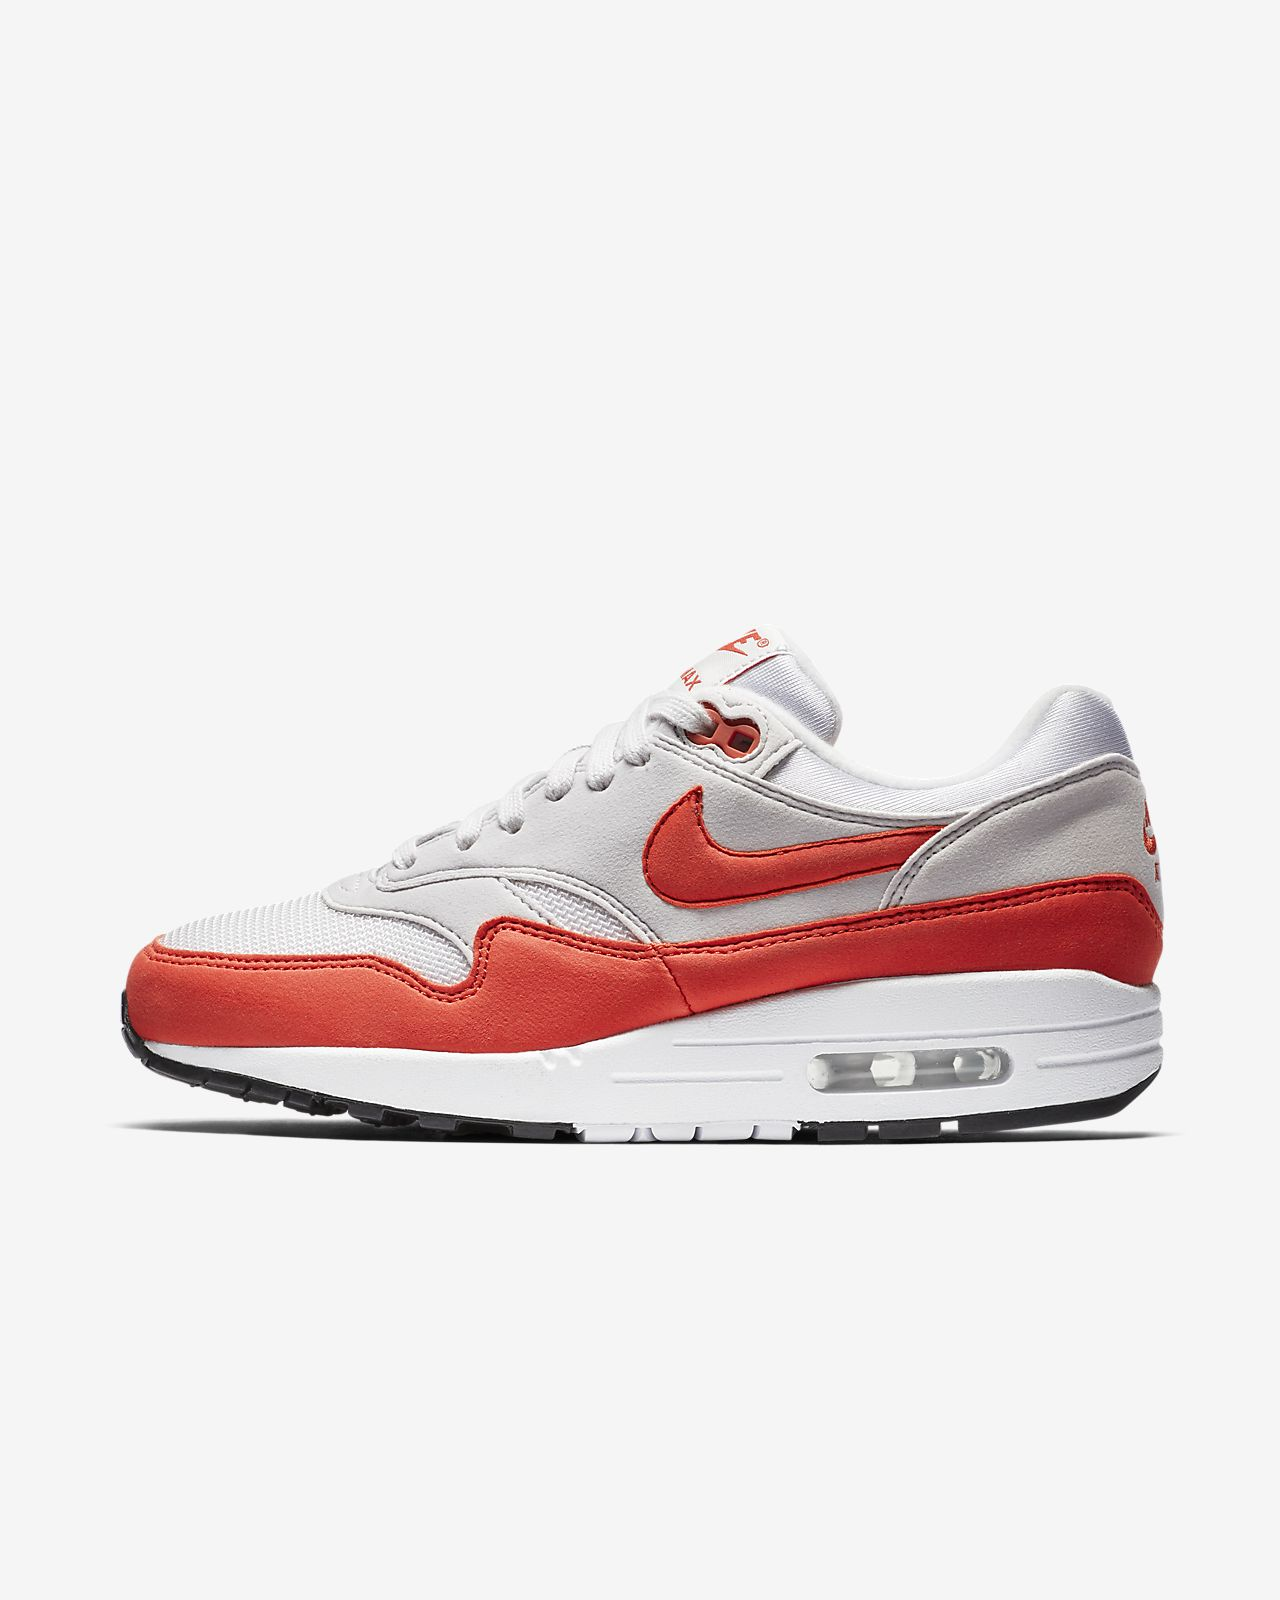 Ladies Red Nike MaxAir Air max Trainers  Size Uk 3.5